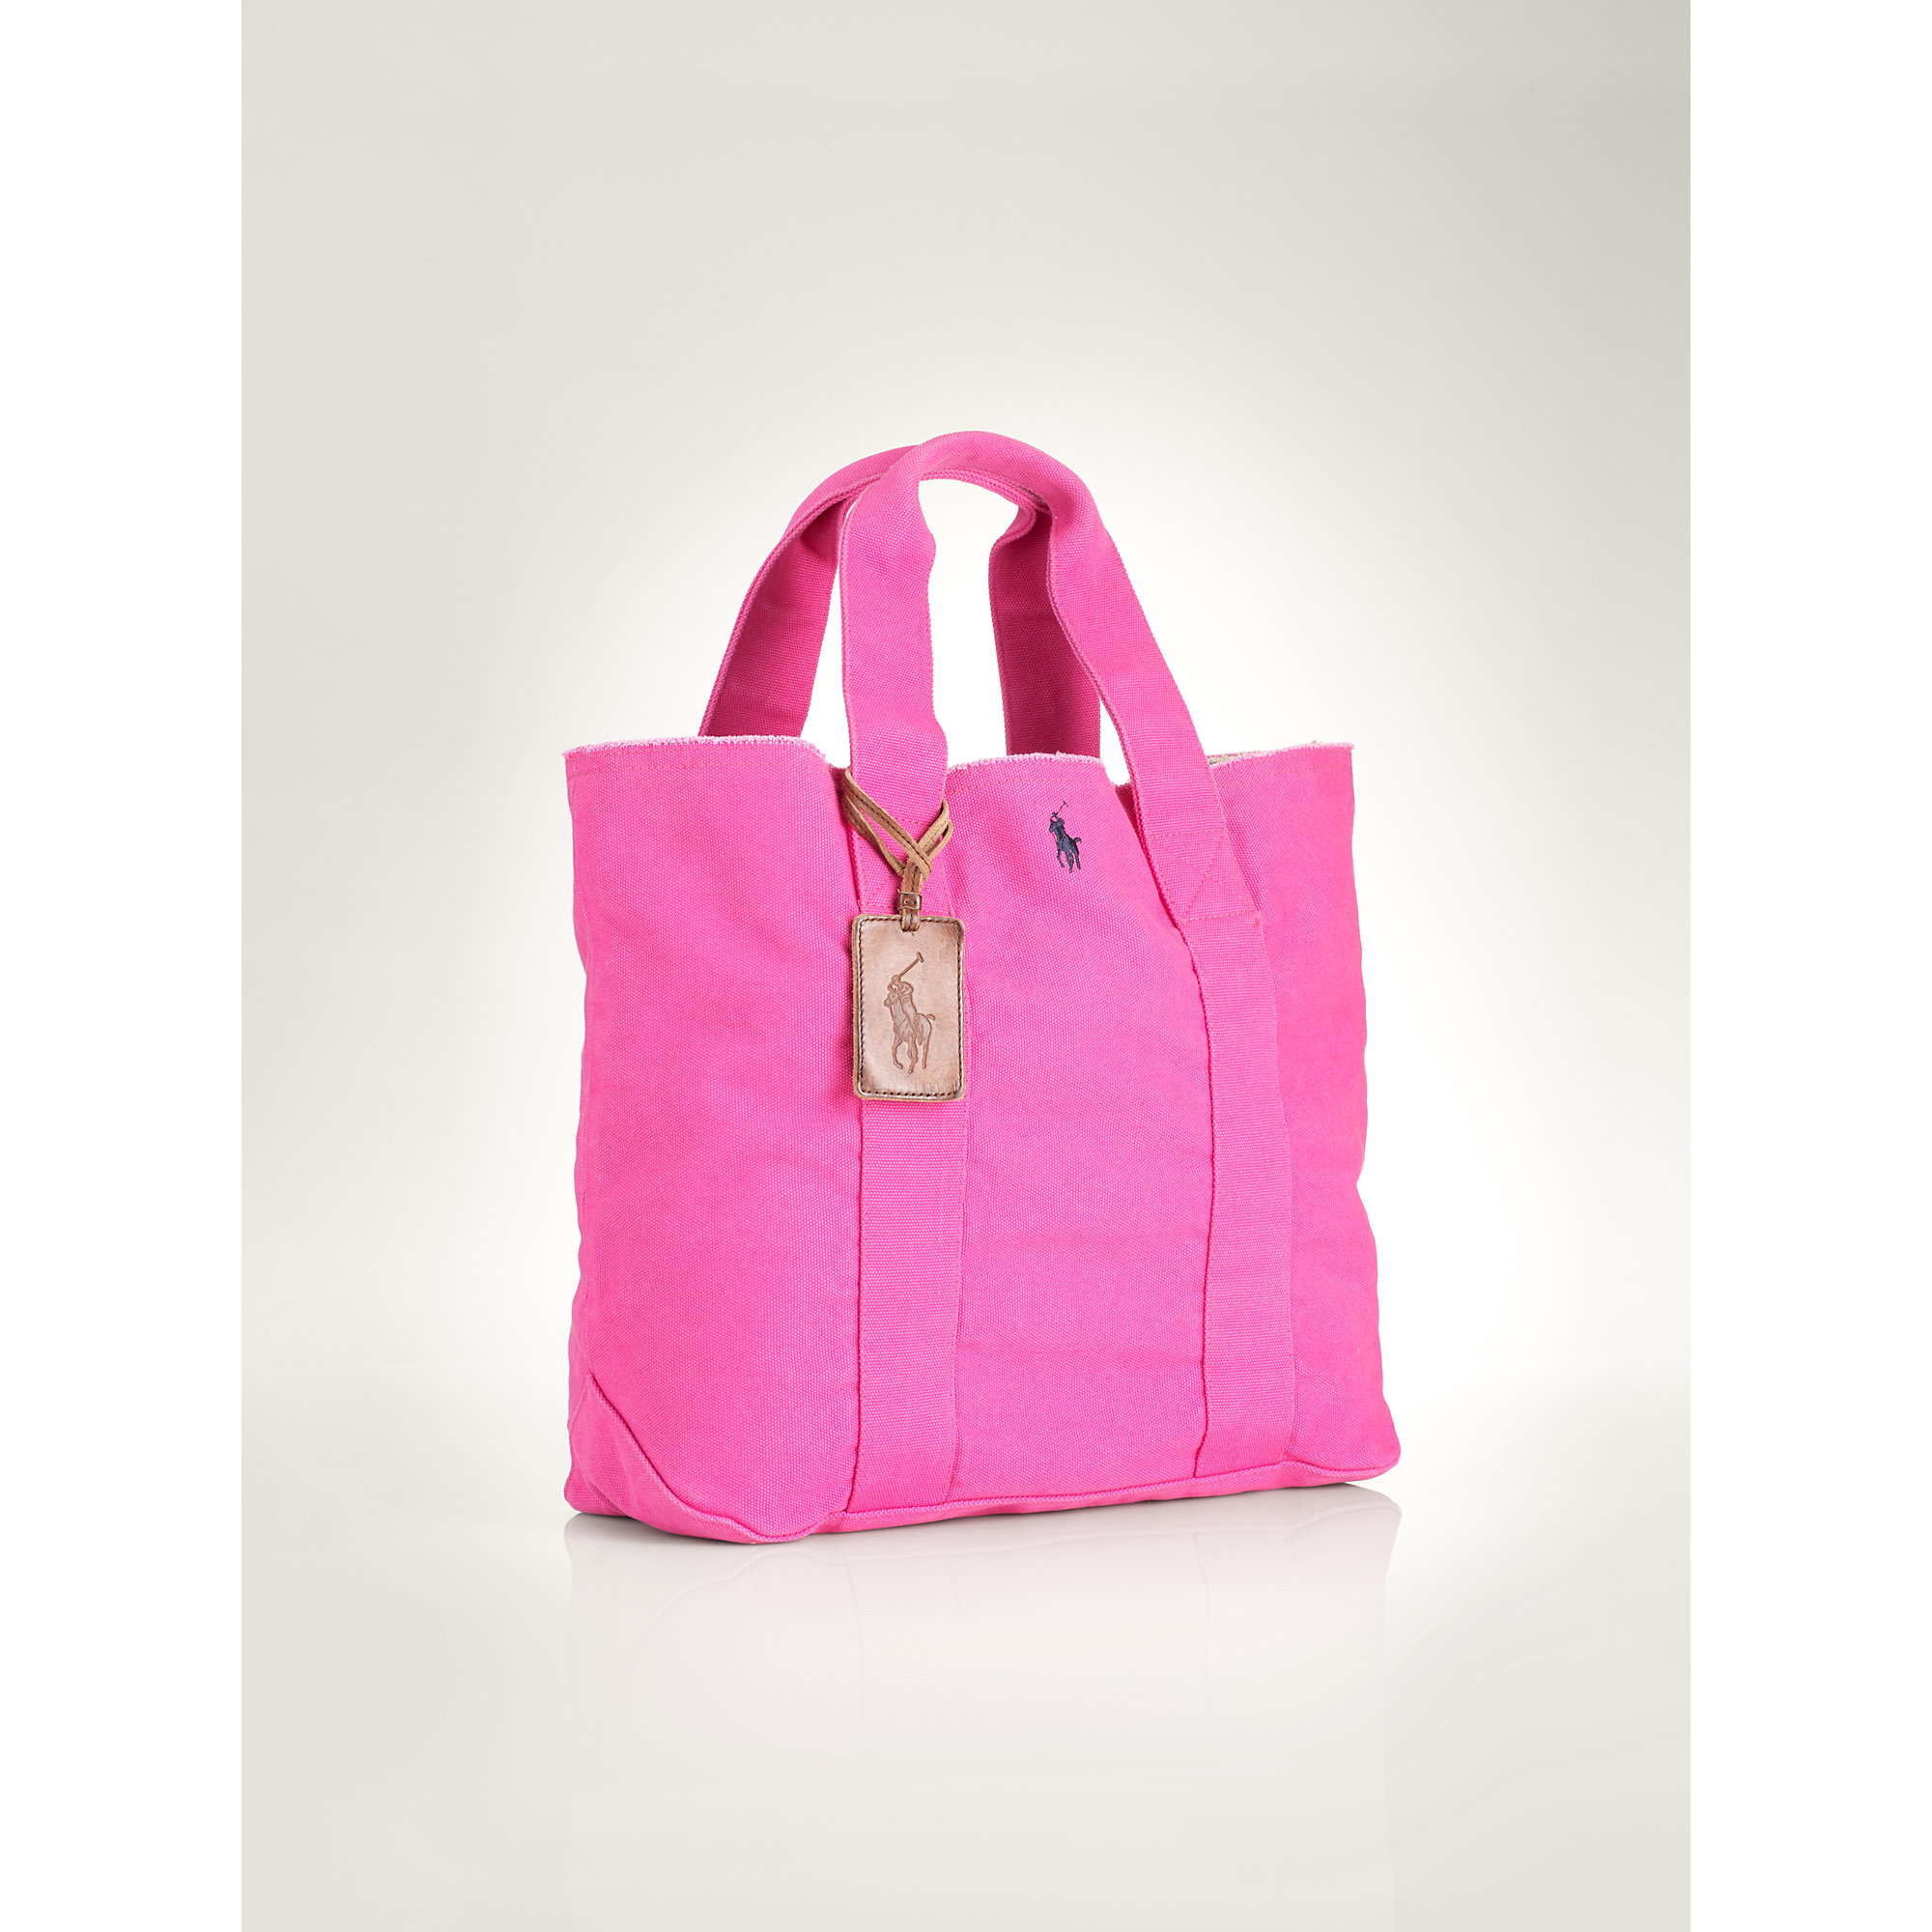 73d8e6fdd69c Lyst - Ralph Lauren Pony Canvas Tote in Pink